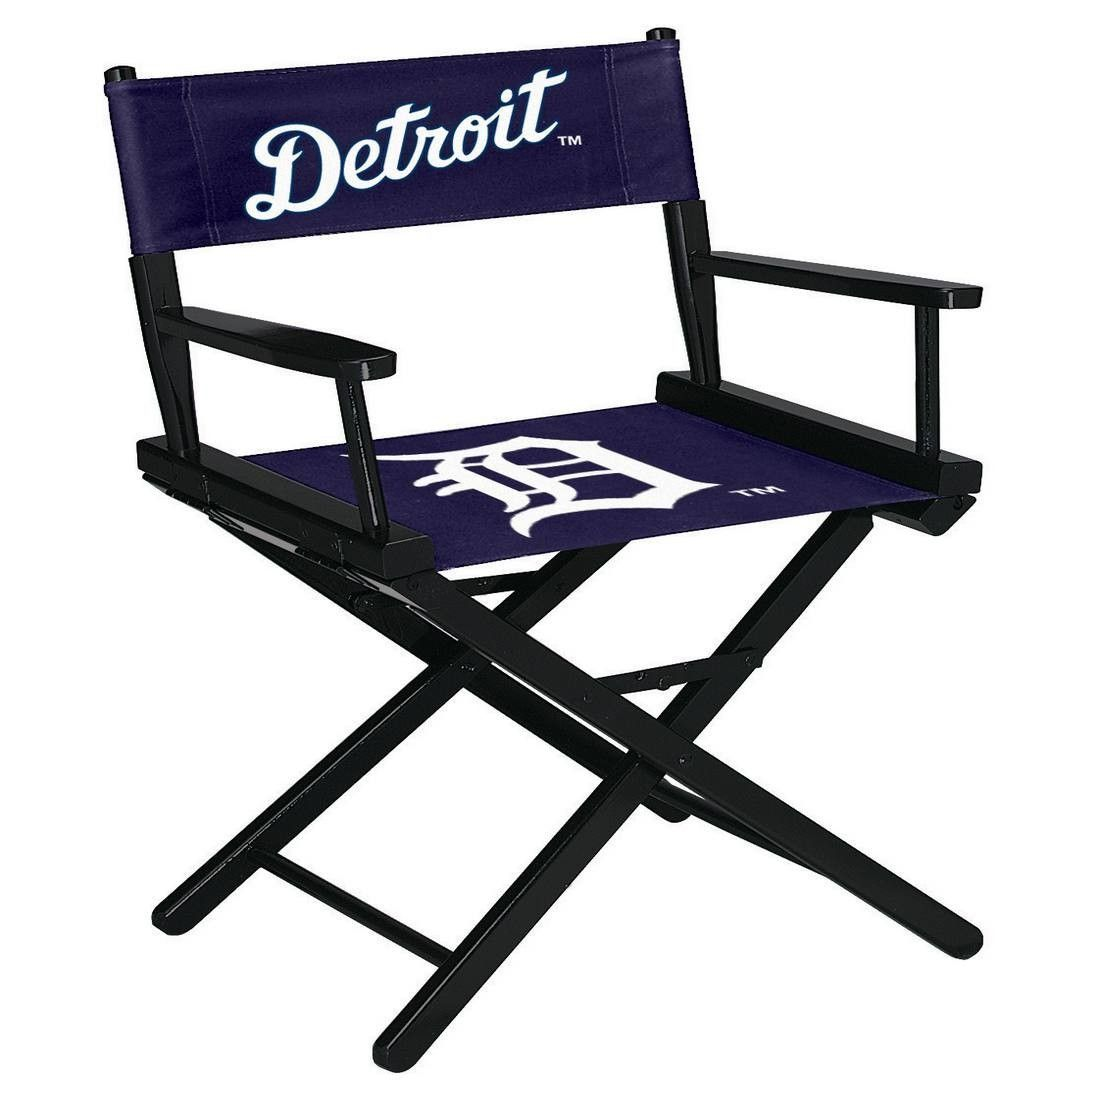 The Mlb Table Height Directors Chair Detroit Tigers